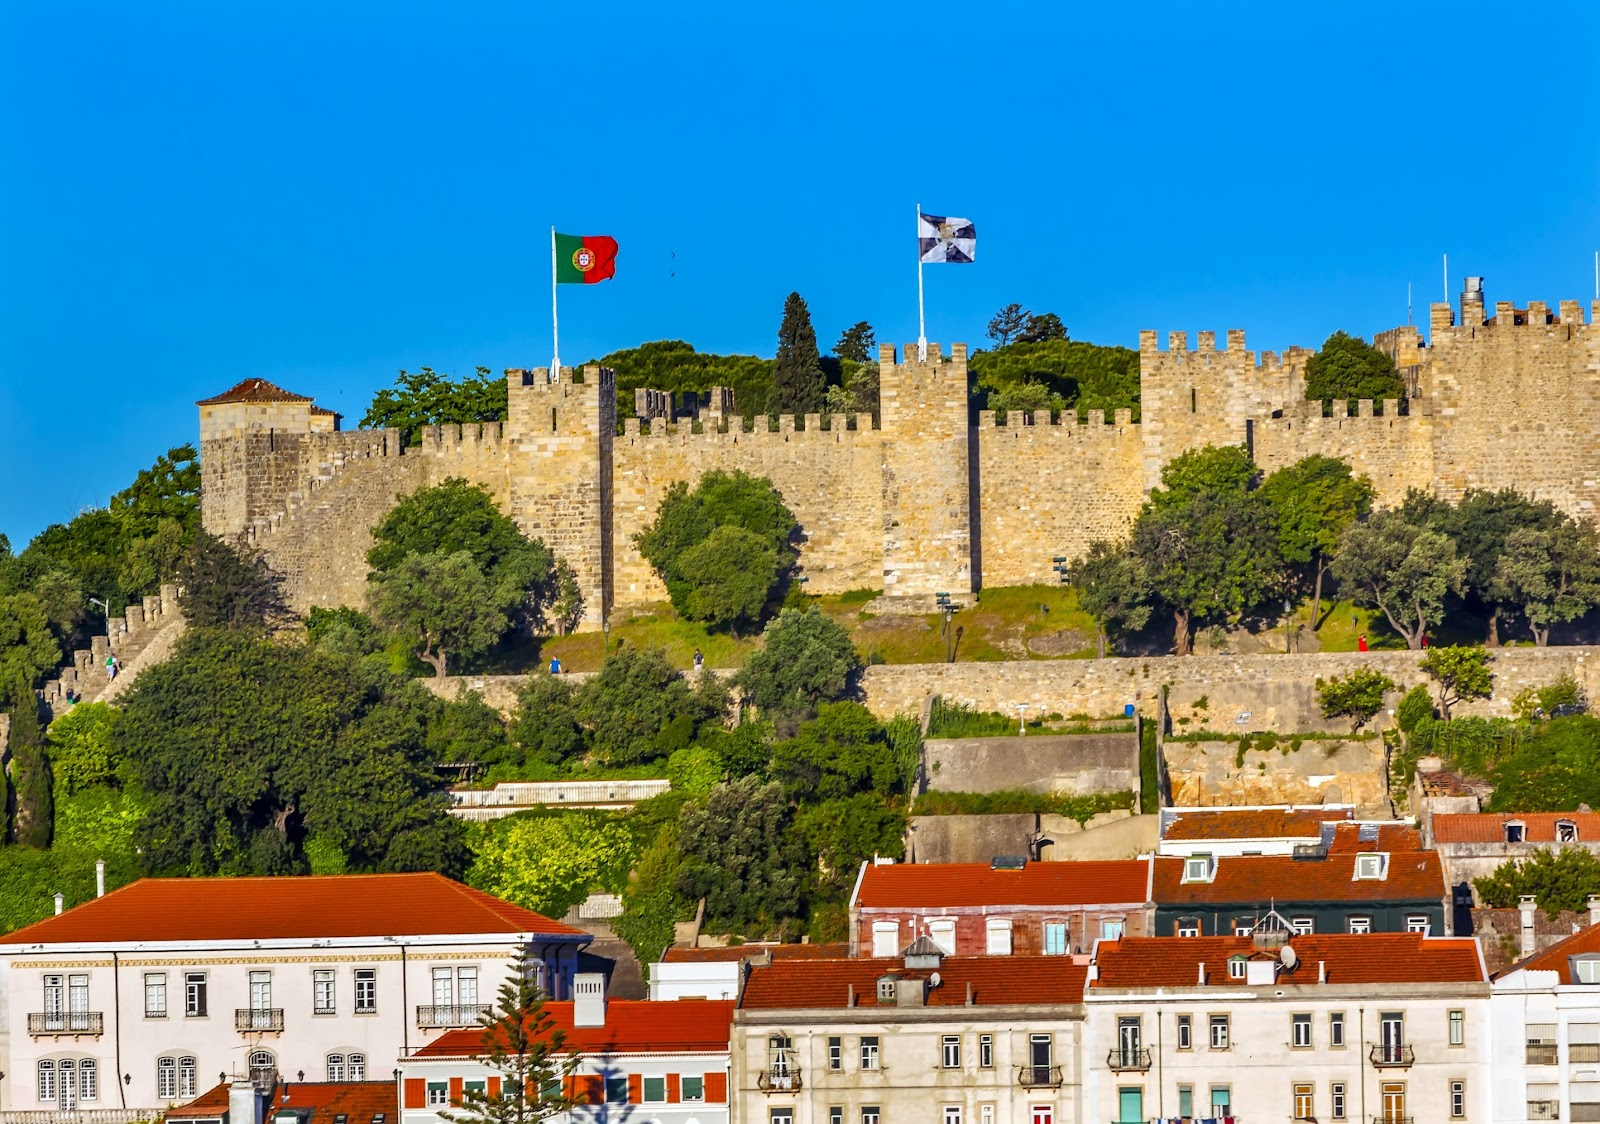 Castelo de São Jorge | Lisbon, Portugal Attractions - Lonely Planet